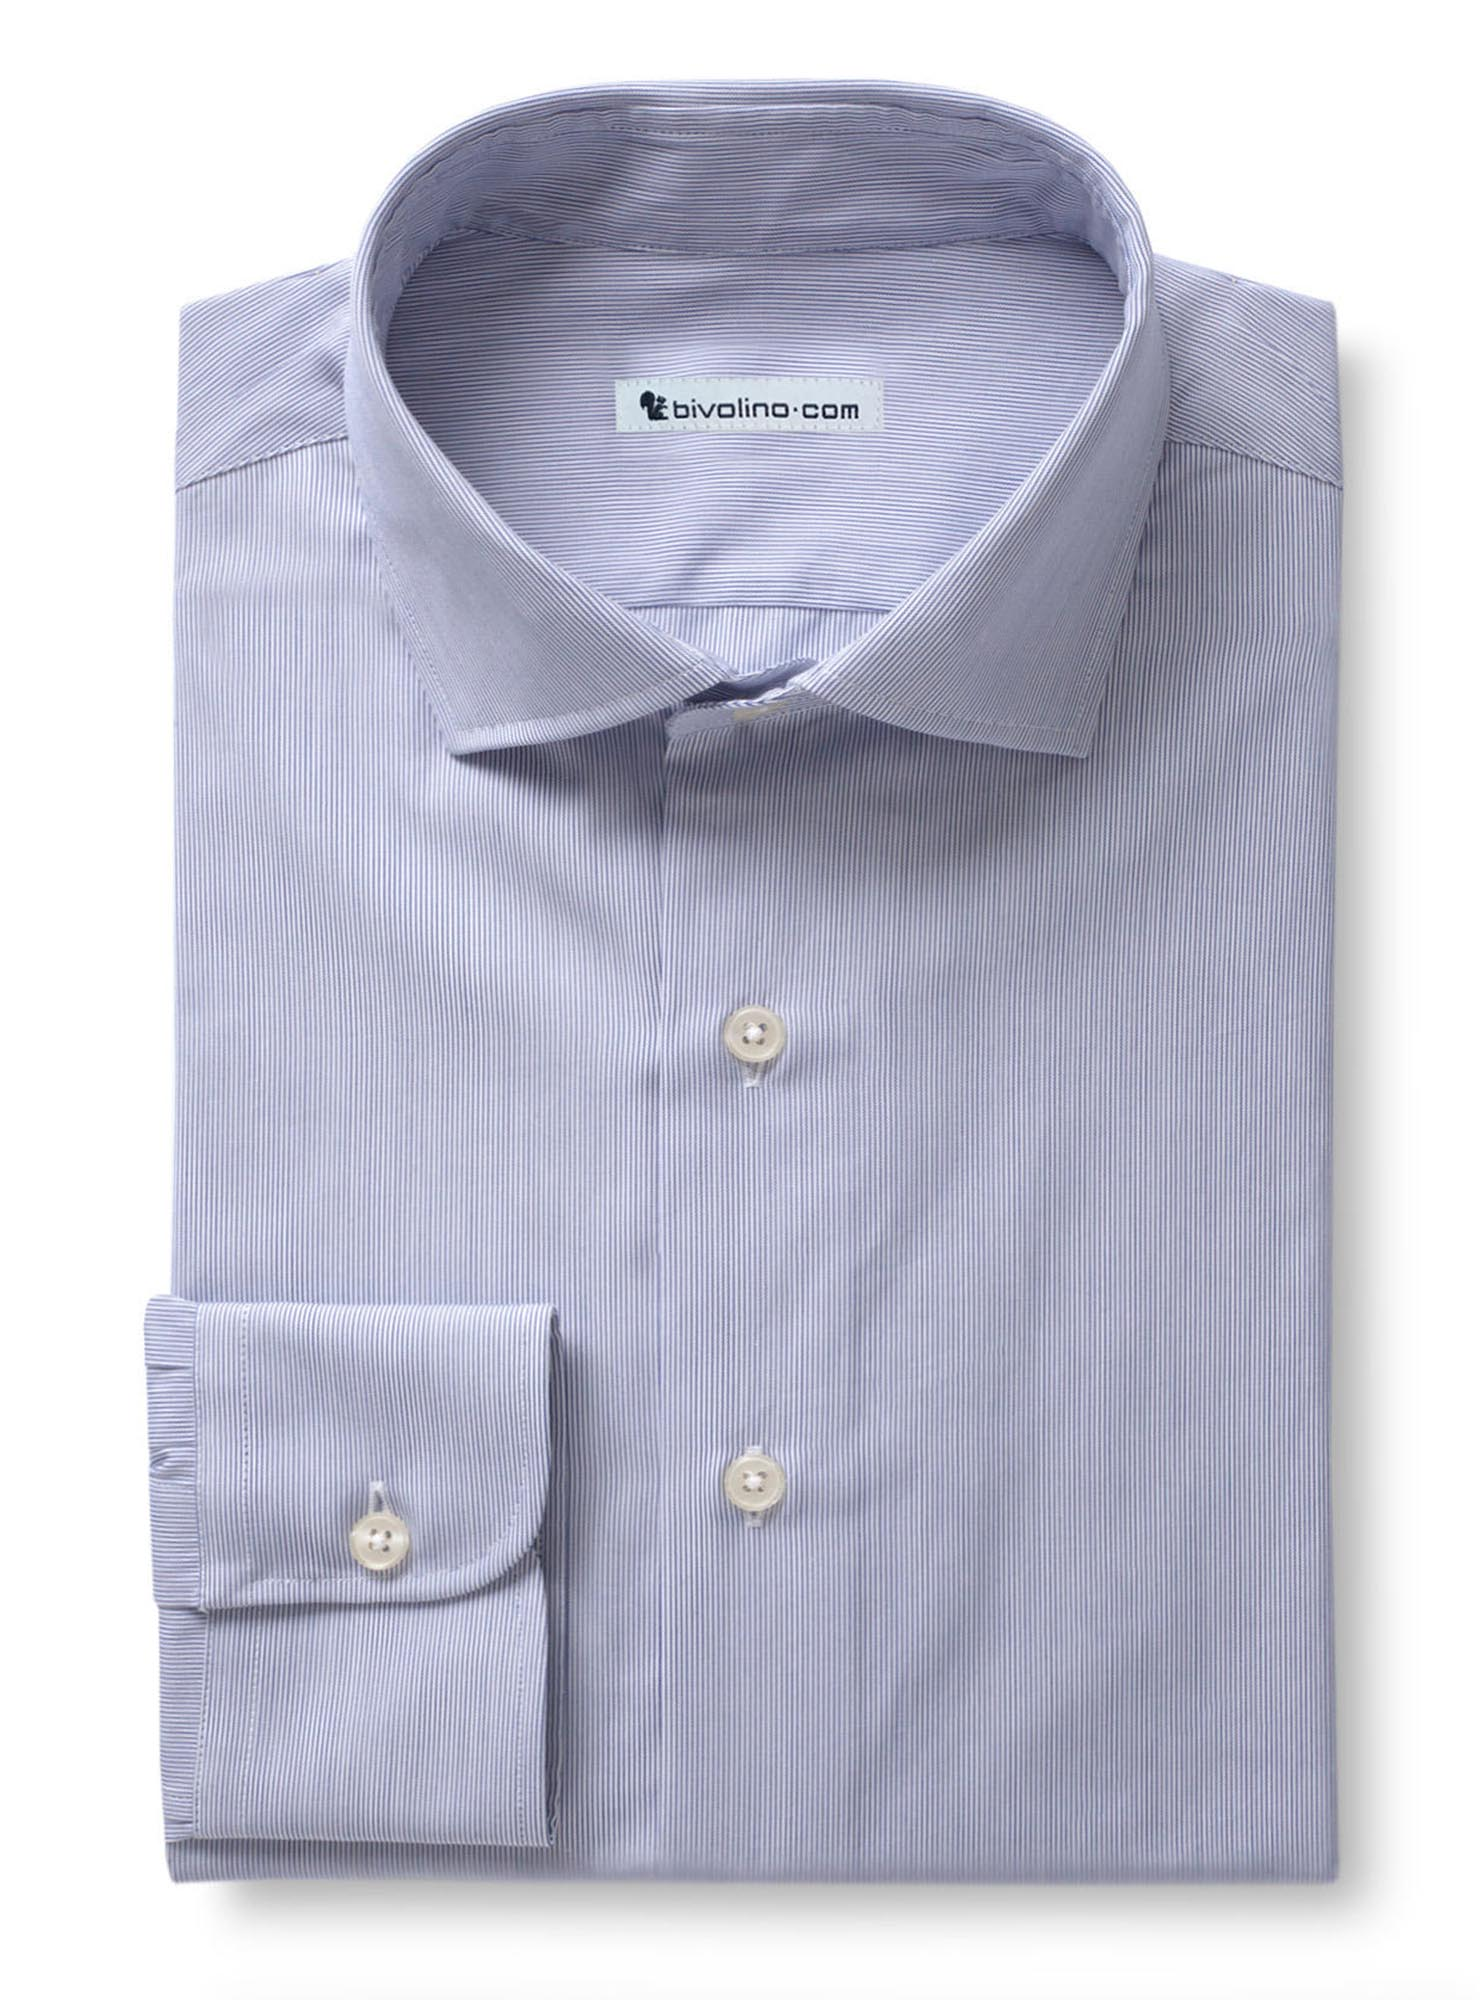 SPECIA - Light blue striped poplin - TUFO 5